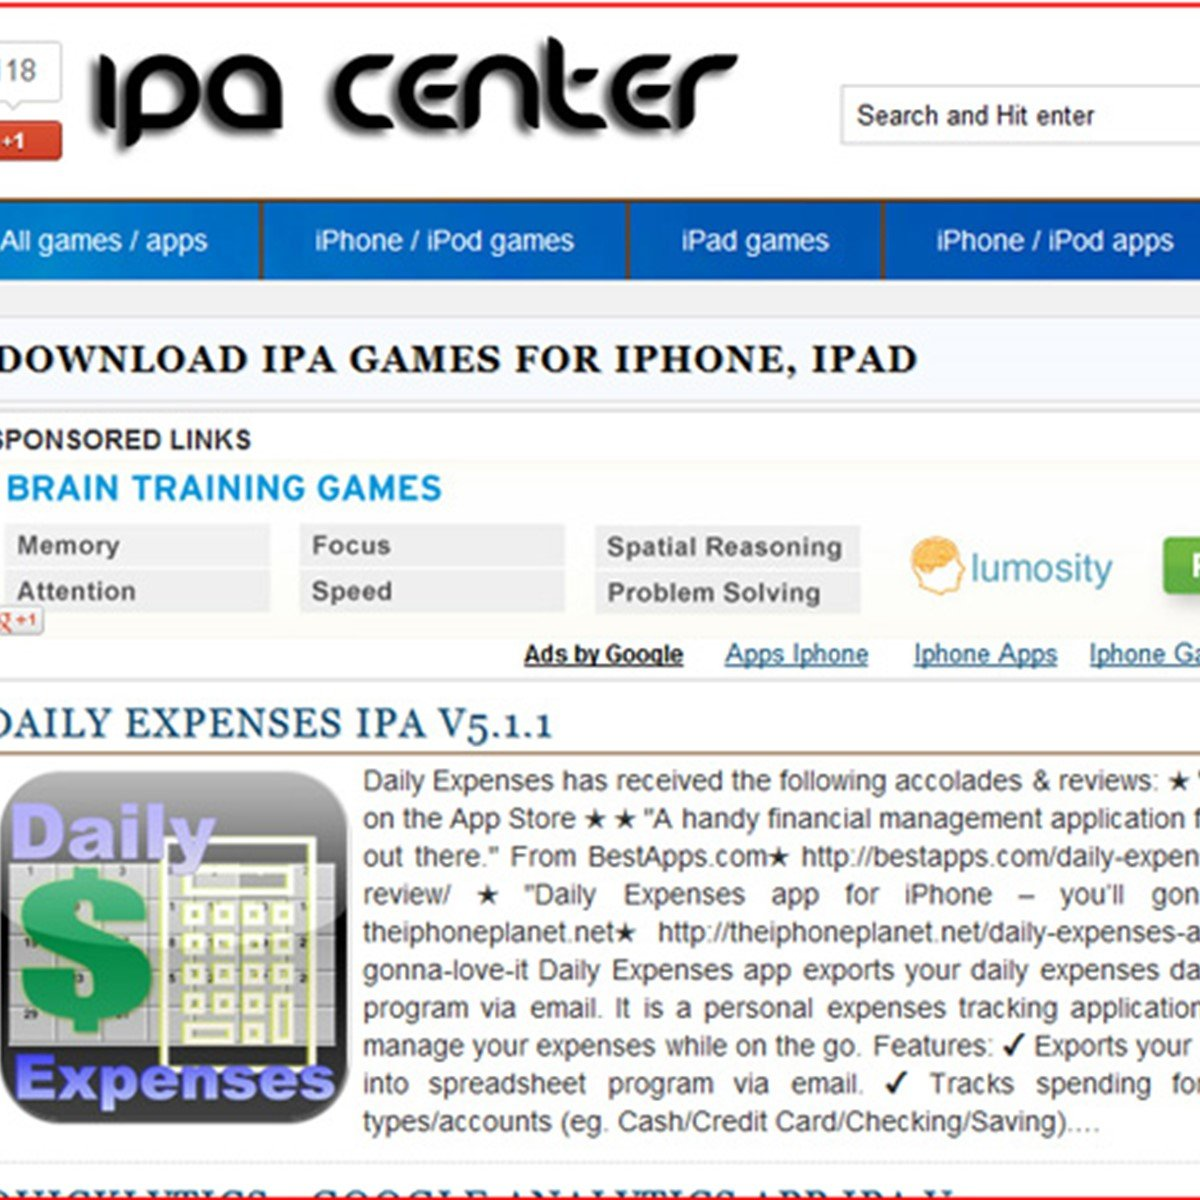 Ipa Center Alternatives and Similar Websites and Apps